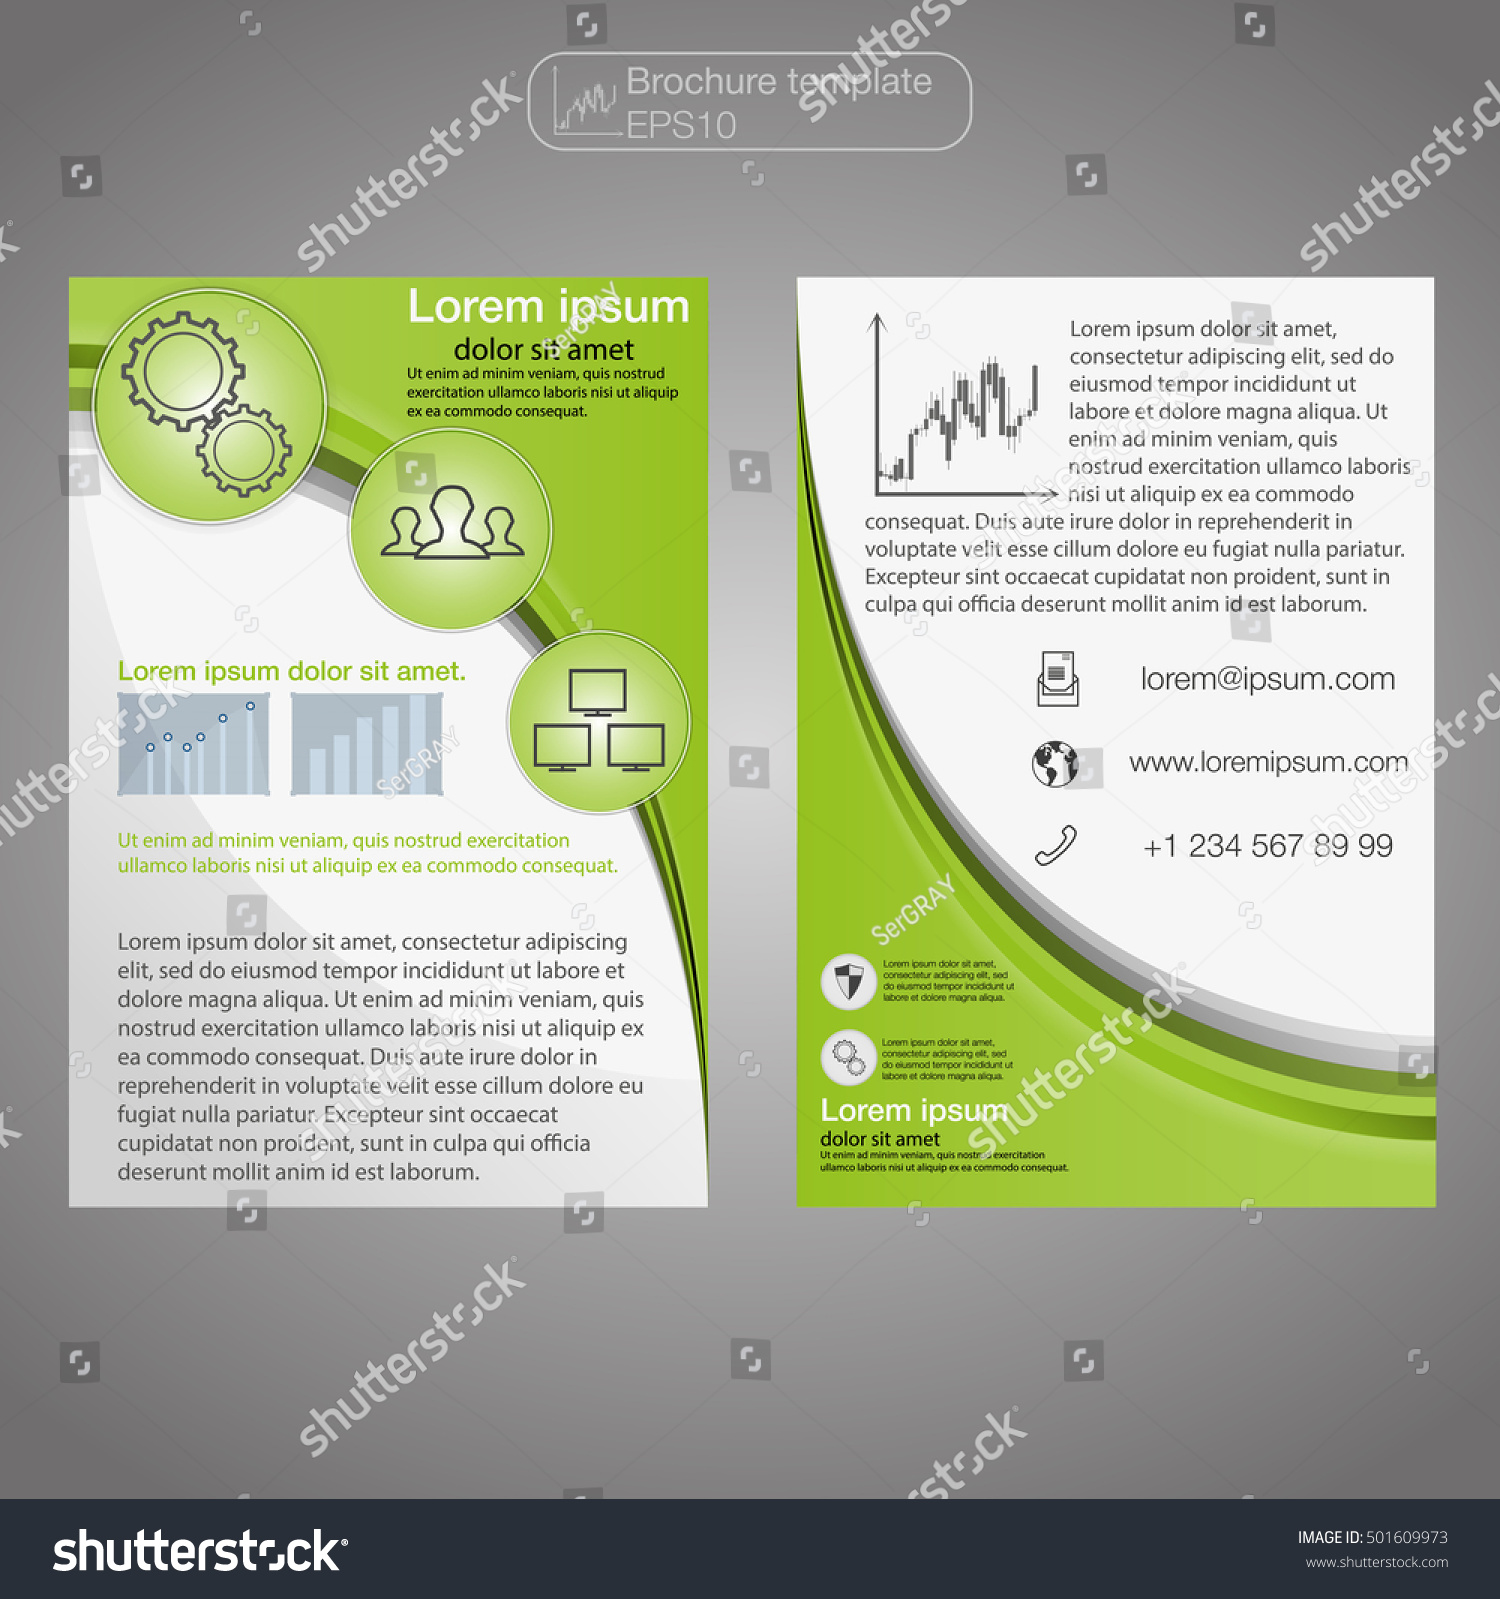 Magnificent 1 Page Resumes Huge 1 Week Calendar Template Flat 1099 Agreement Template 11 Vuze Search Templates Young 15 Year Old Resume Example Pink2 Week Notice Templates Front Back Page Brochure Template Layout Stock Vector 501609973 ..